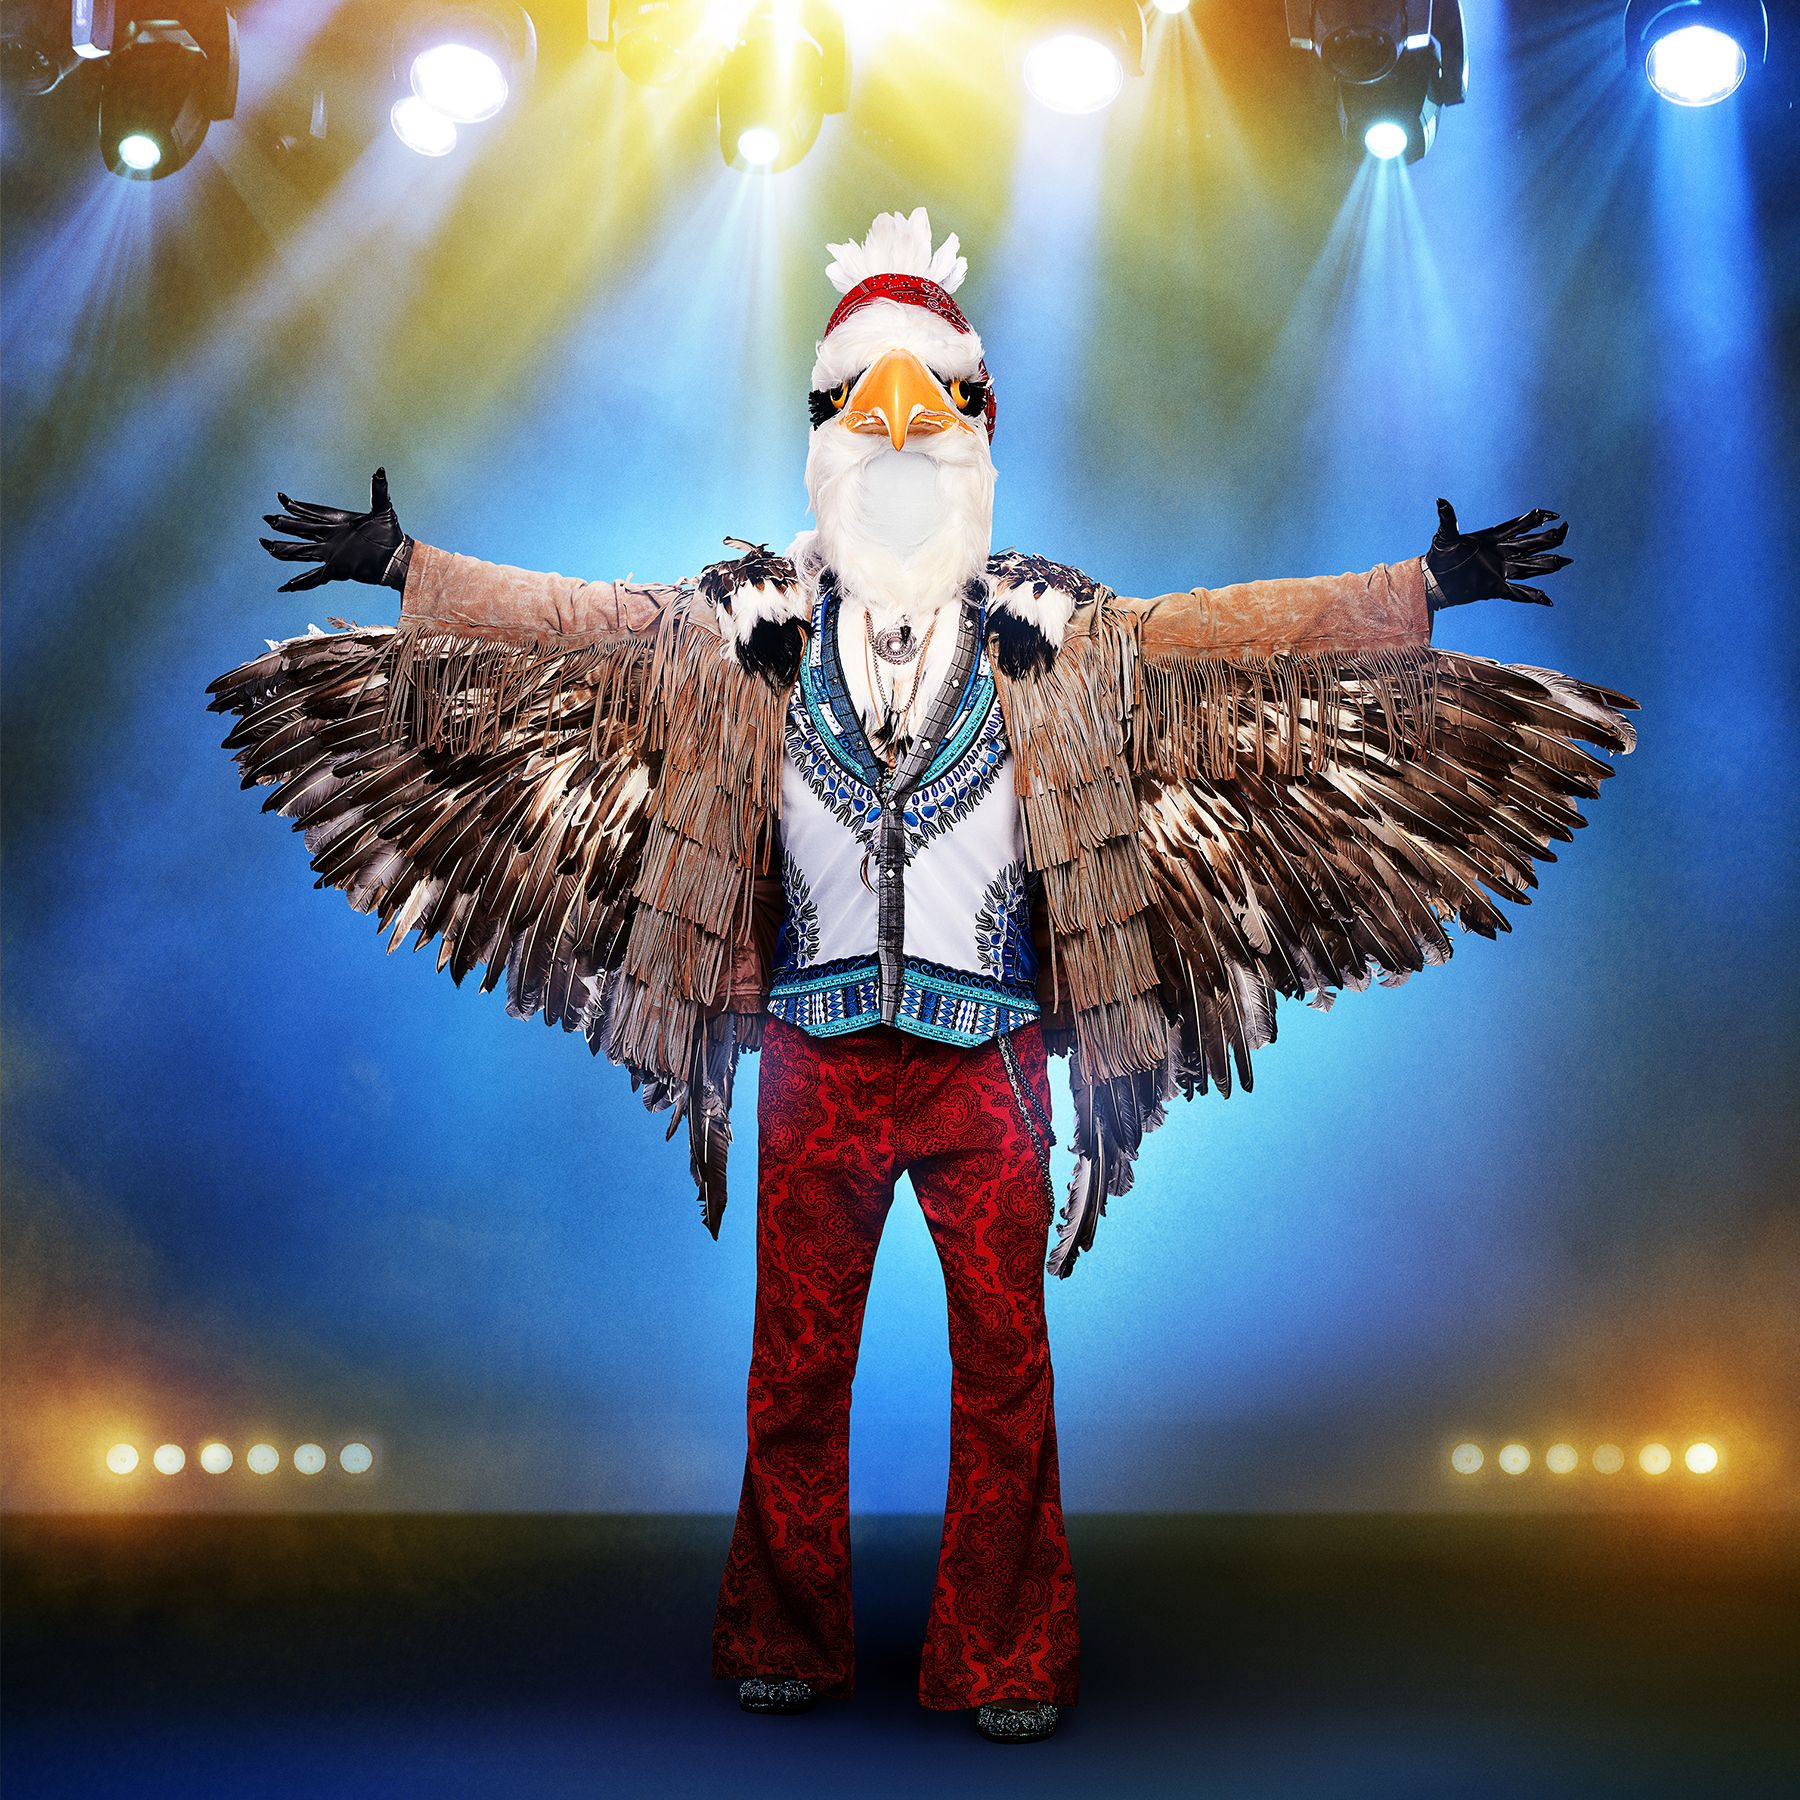 Who Is the Eagle on 'The Masked Singer'? Pick Us, We Know!